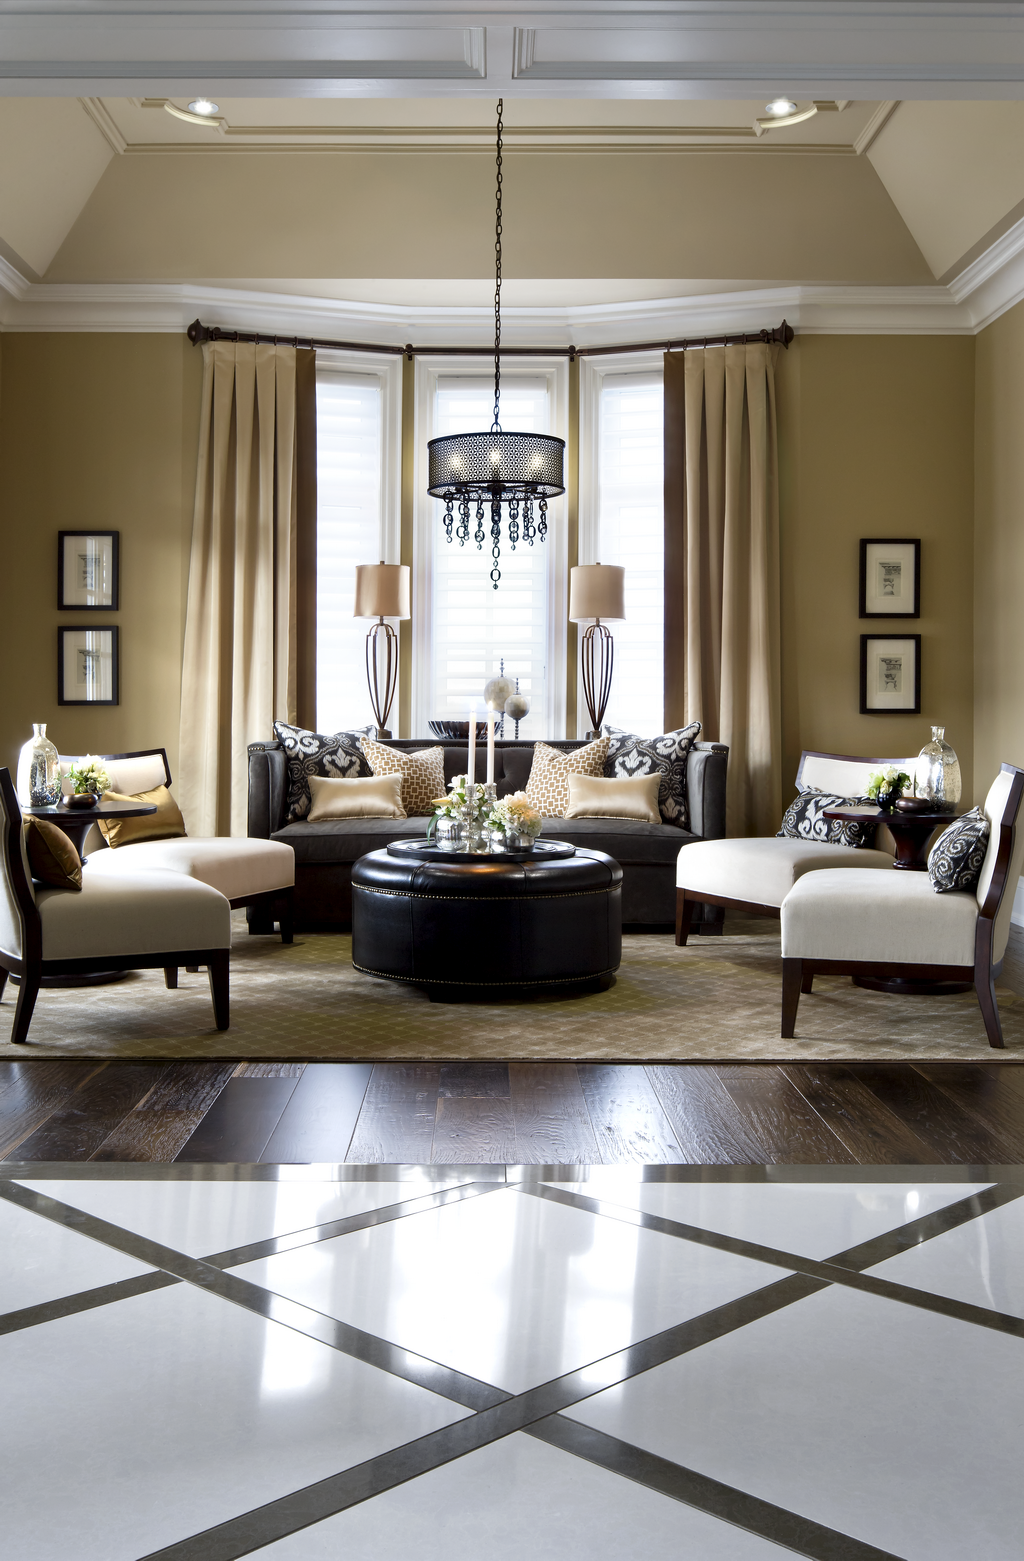 50+ Formal living room ideas with bay window info